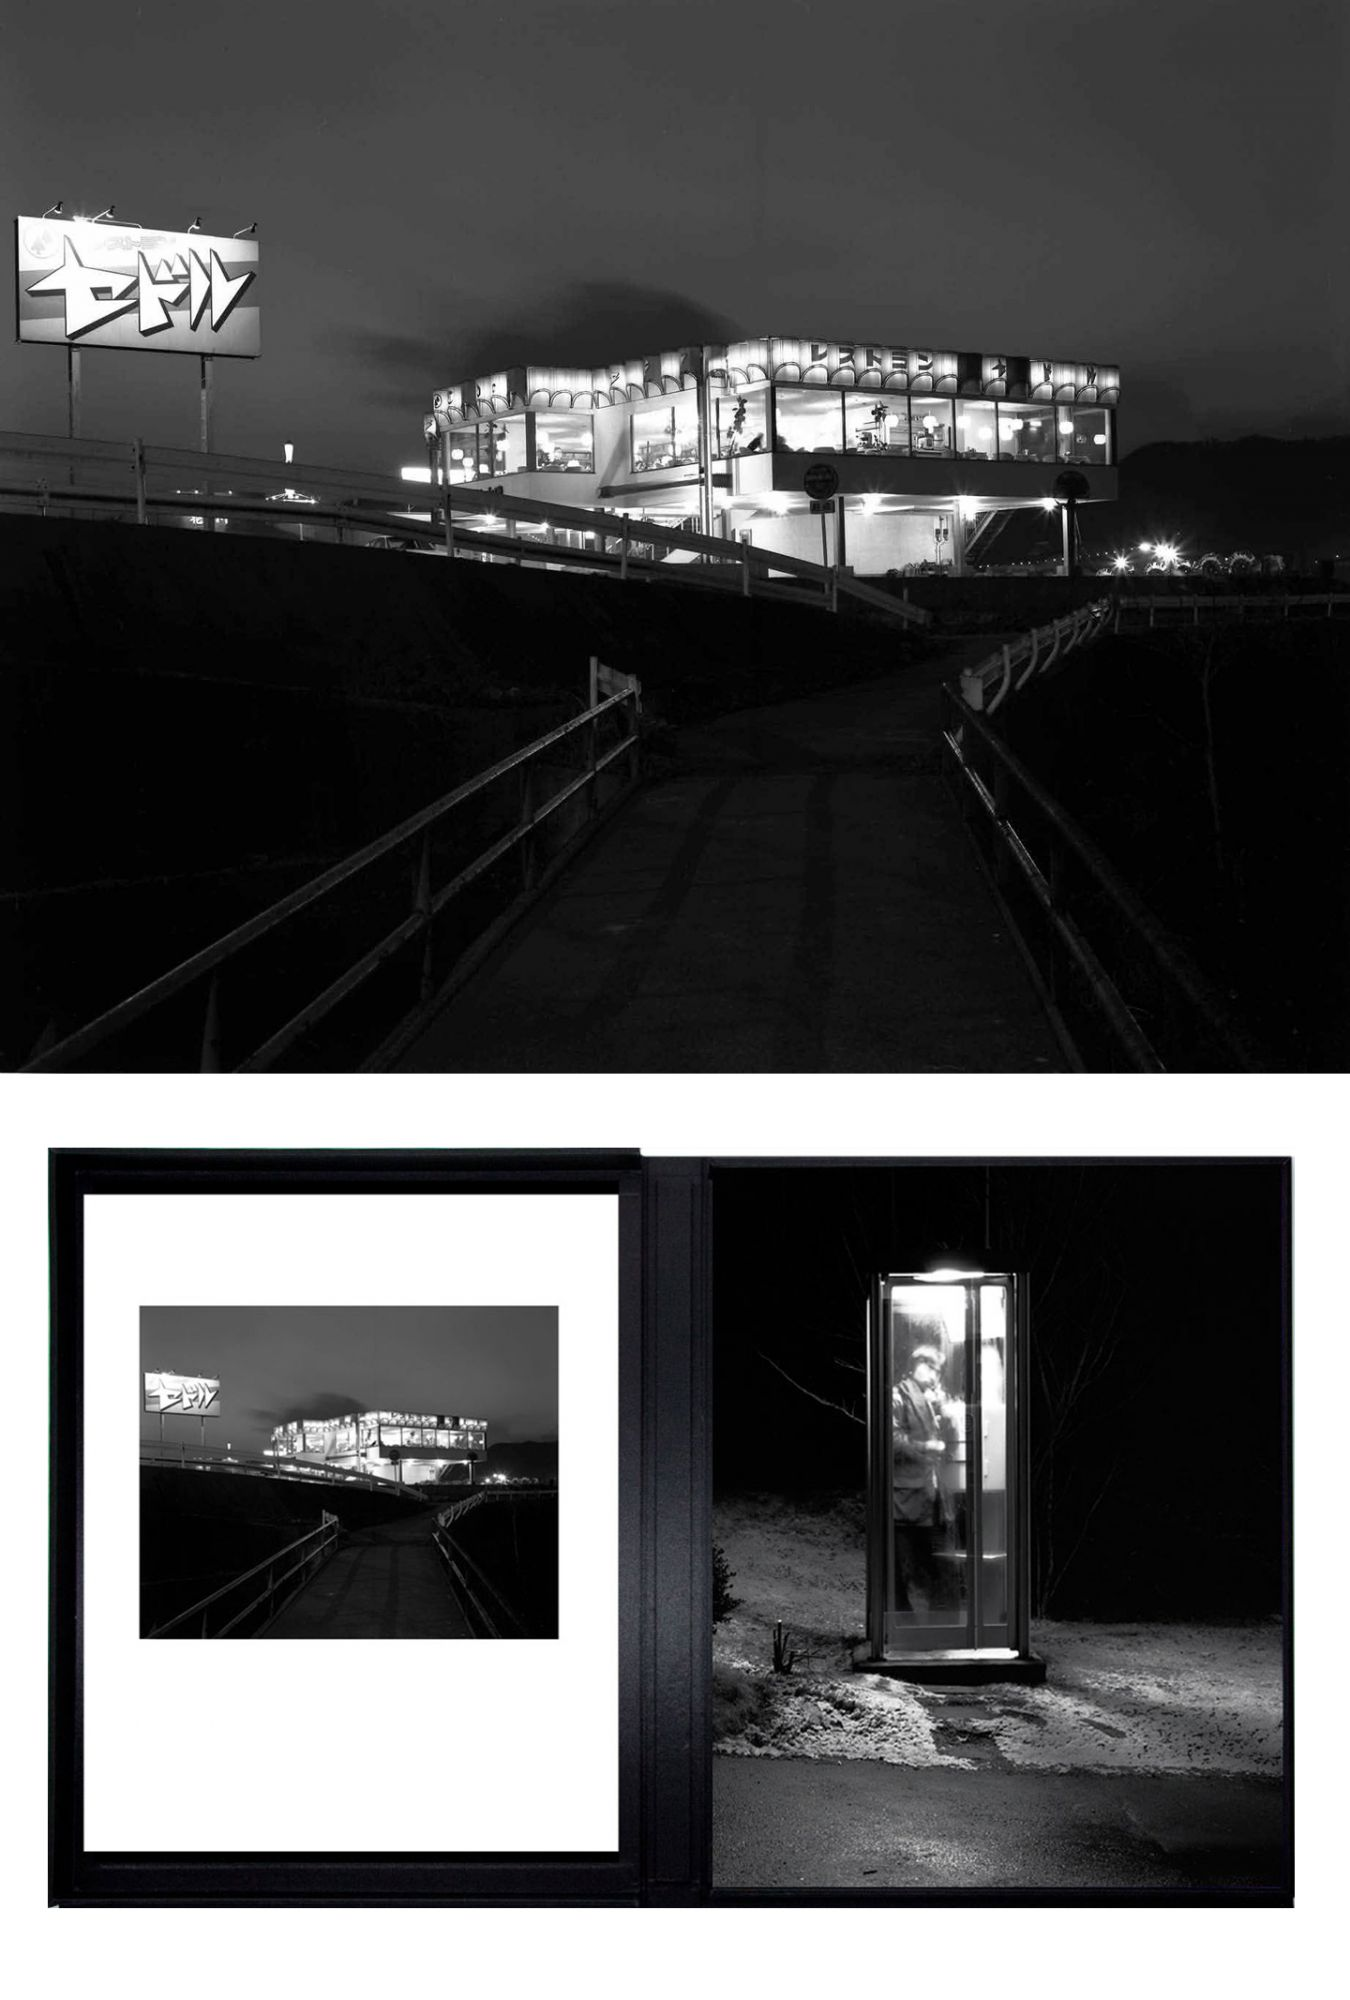 NZ Library #2: Toshio Shibata: Yodaka, Special Limited Edition (with Print) (NZ Library - Set Two, Volume Five) [SIGNED]